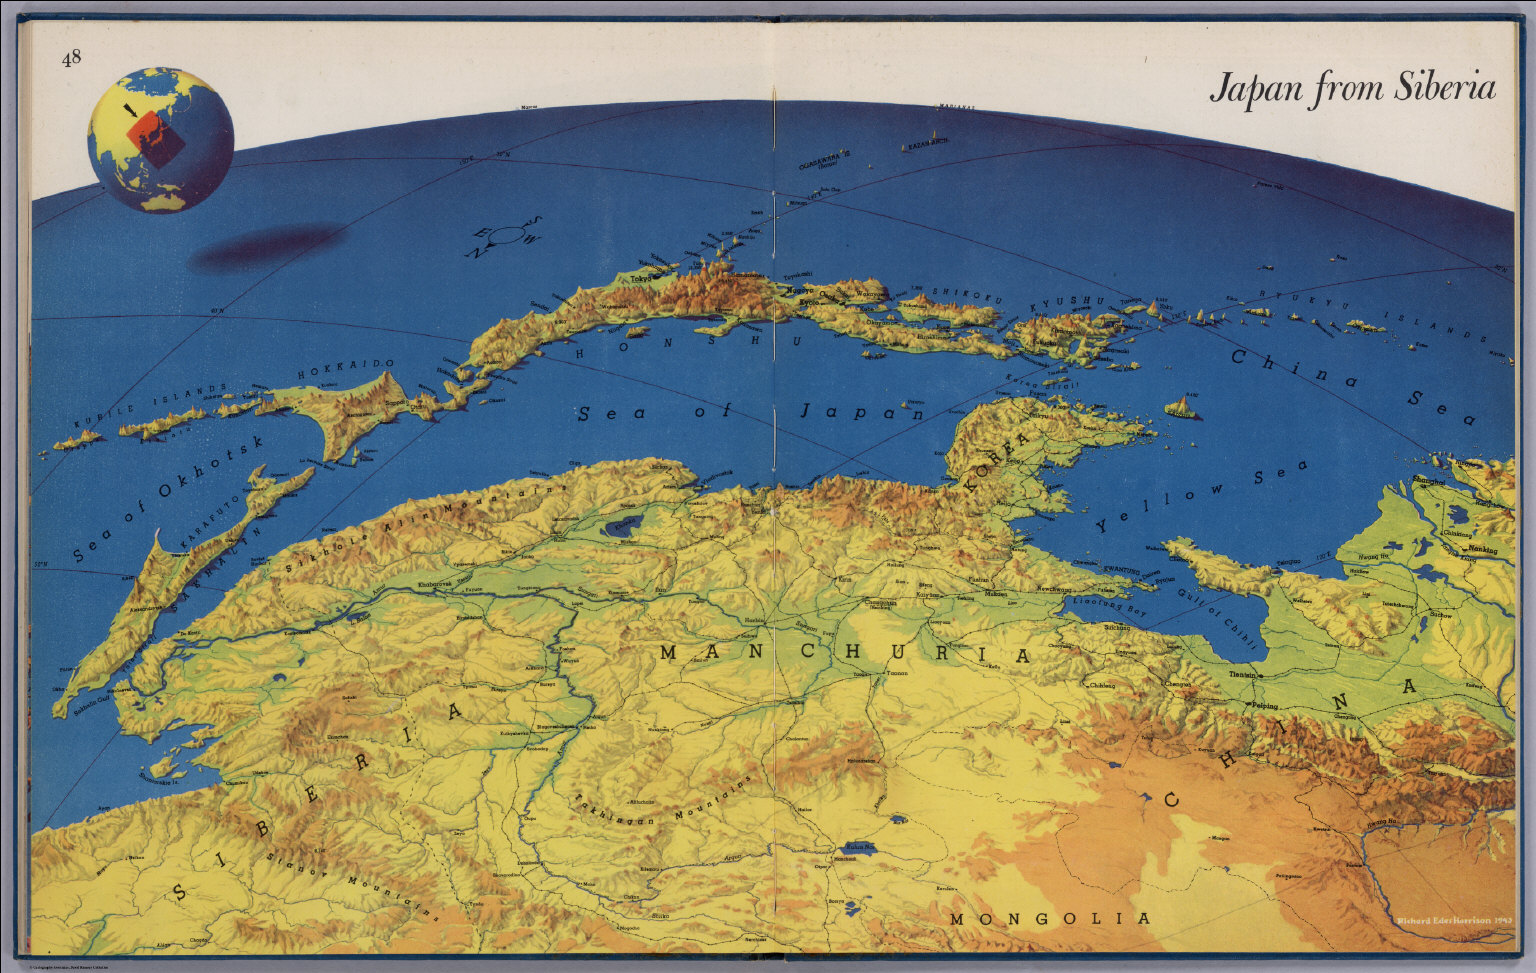 Where Is Siberia On A World Map.Japan From Siberia David Rumsey Historical Map Collection